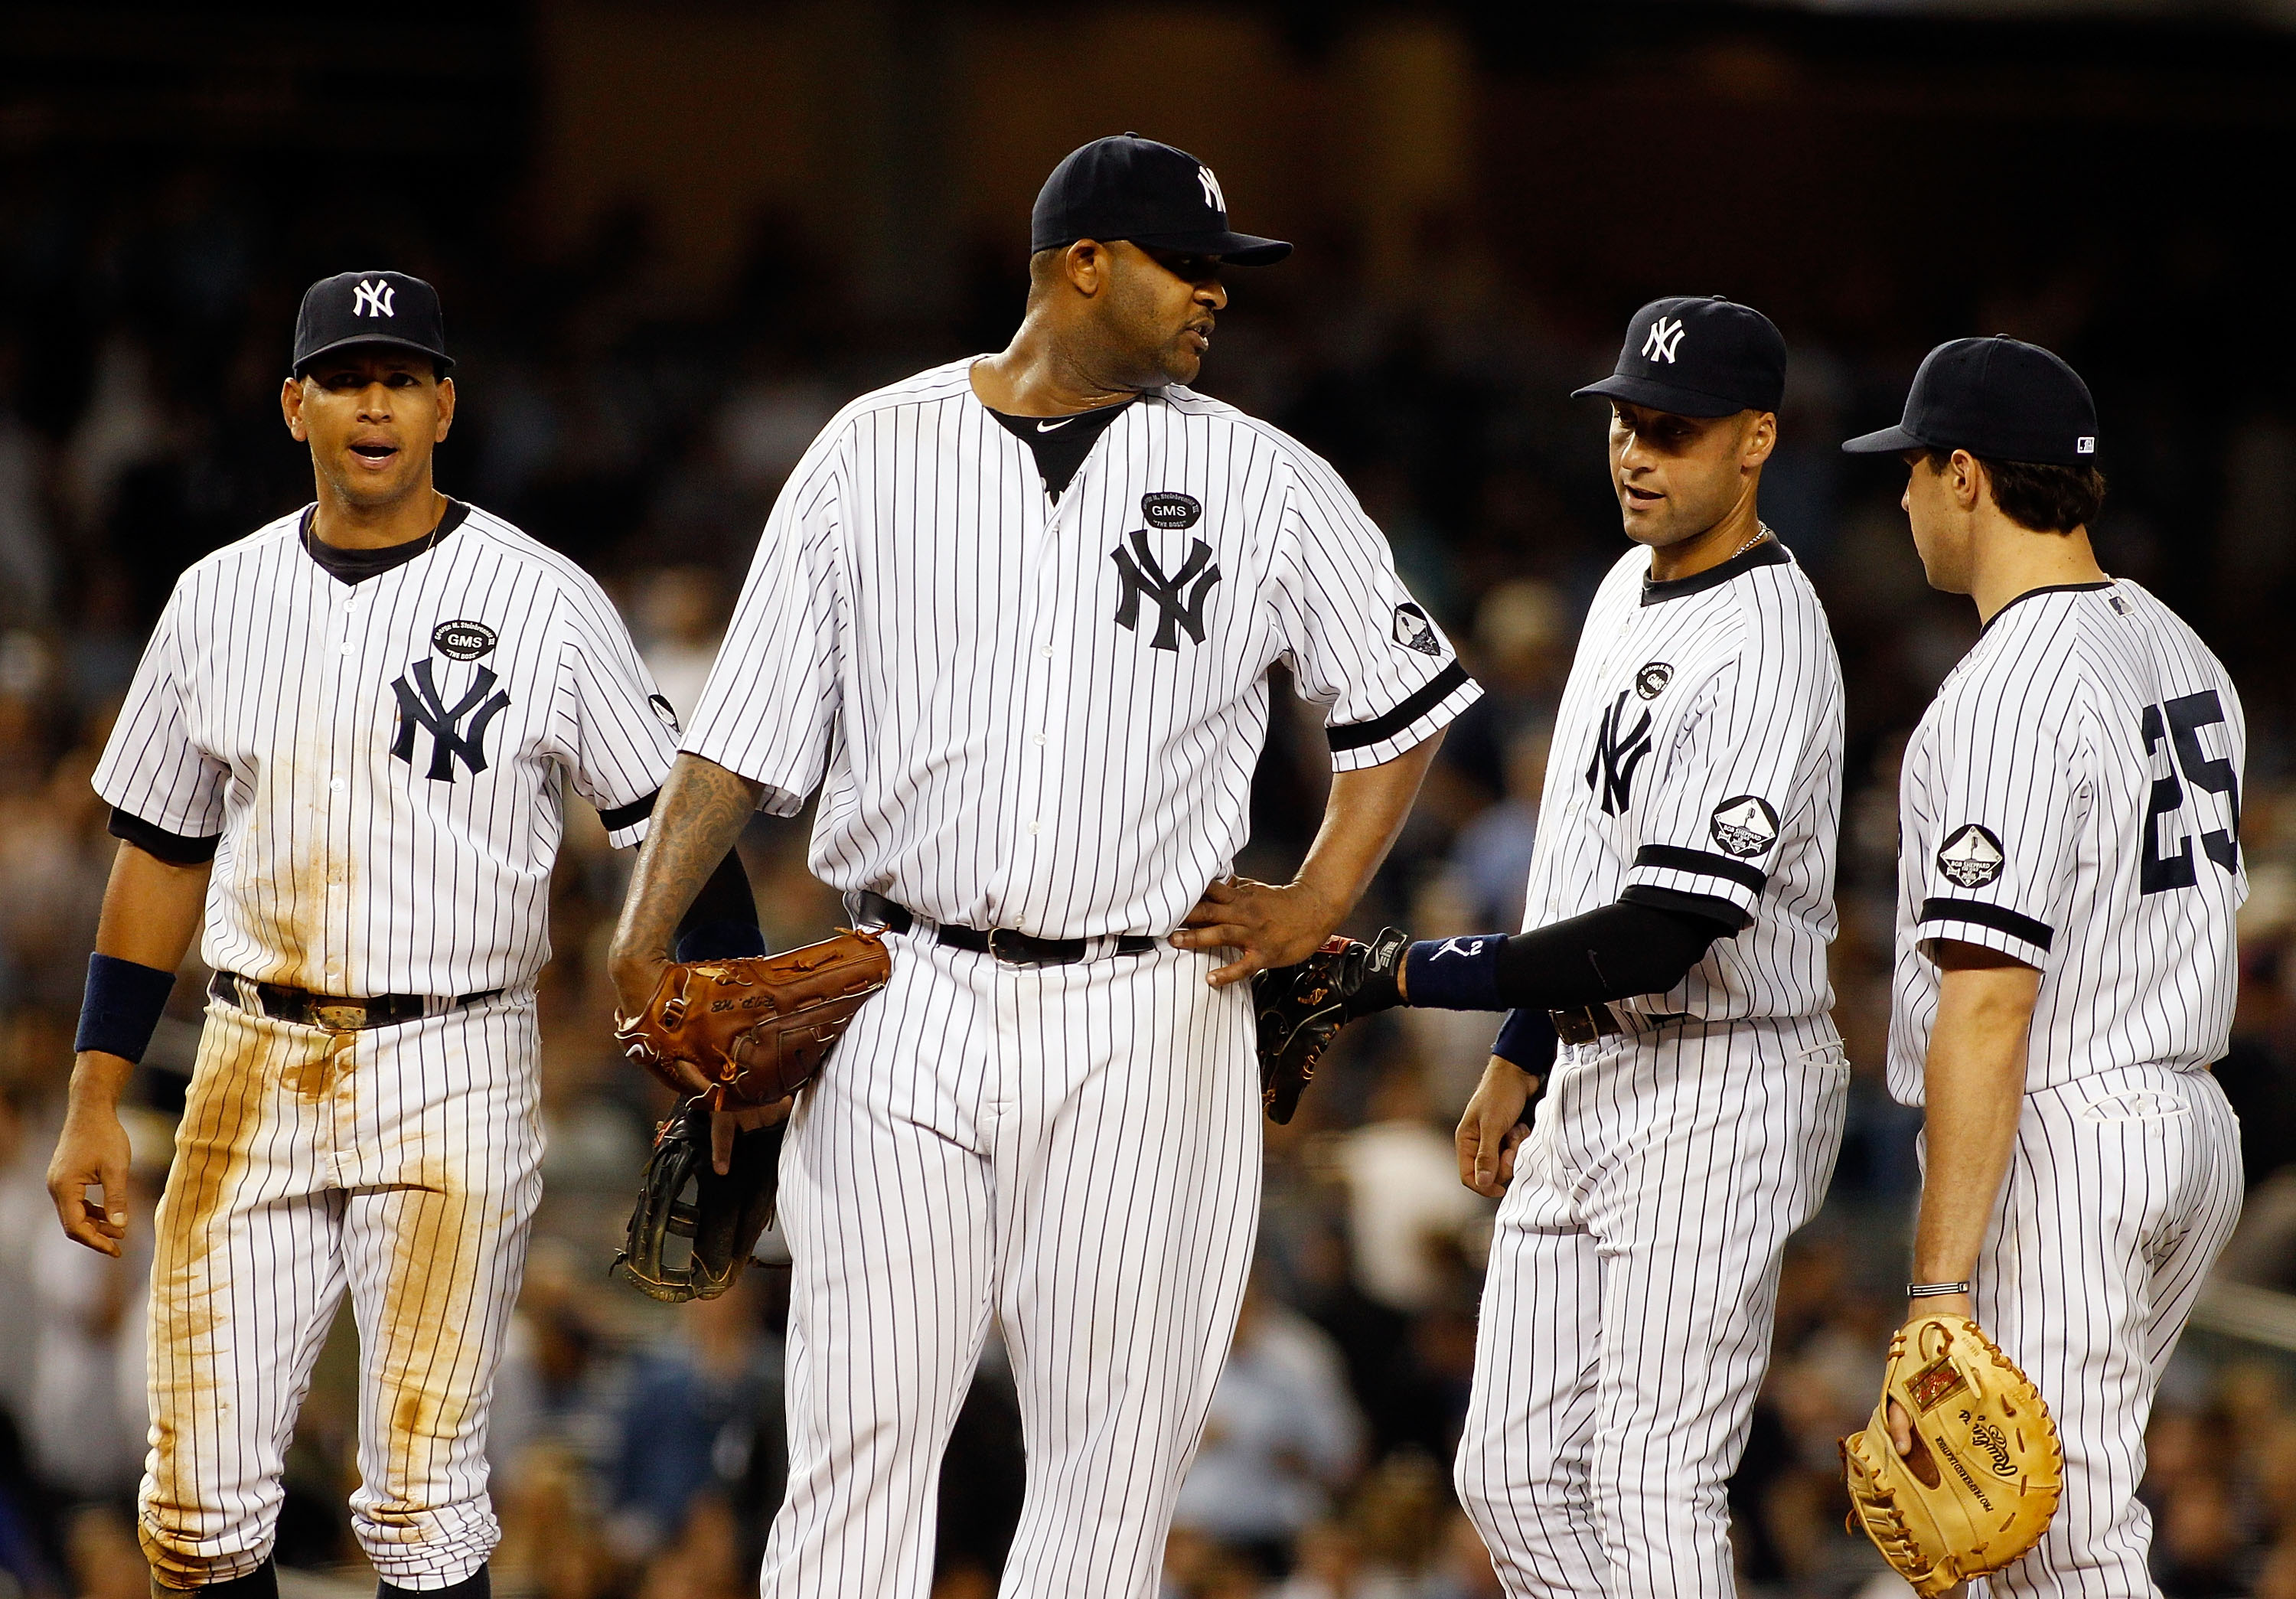 NEW YORK - SEPTEMBER 23:  CC Sabathia #52, Derek Jeter #2, Mark Teixeira #25 and Alex Rodriquez #13 of the New York Yankees looks on against the Tampa Bay Rays on September 23, 2010 at Yankee Stadium in the Bronx borough of New York City.  (Photo by Mike